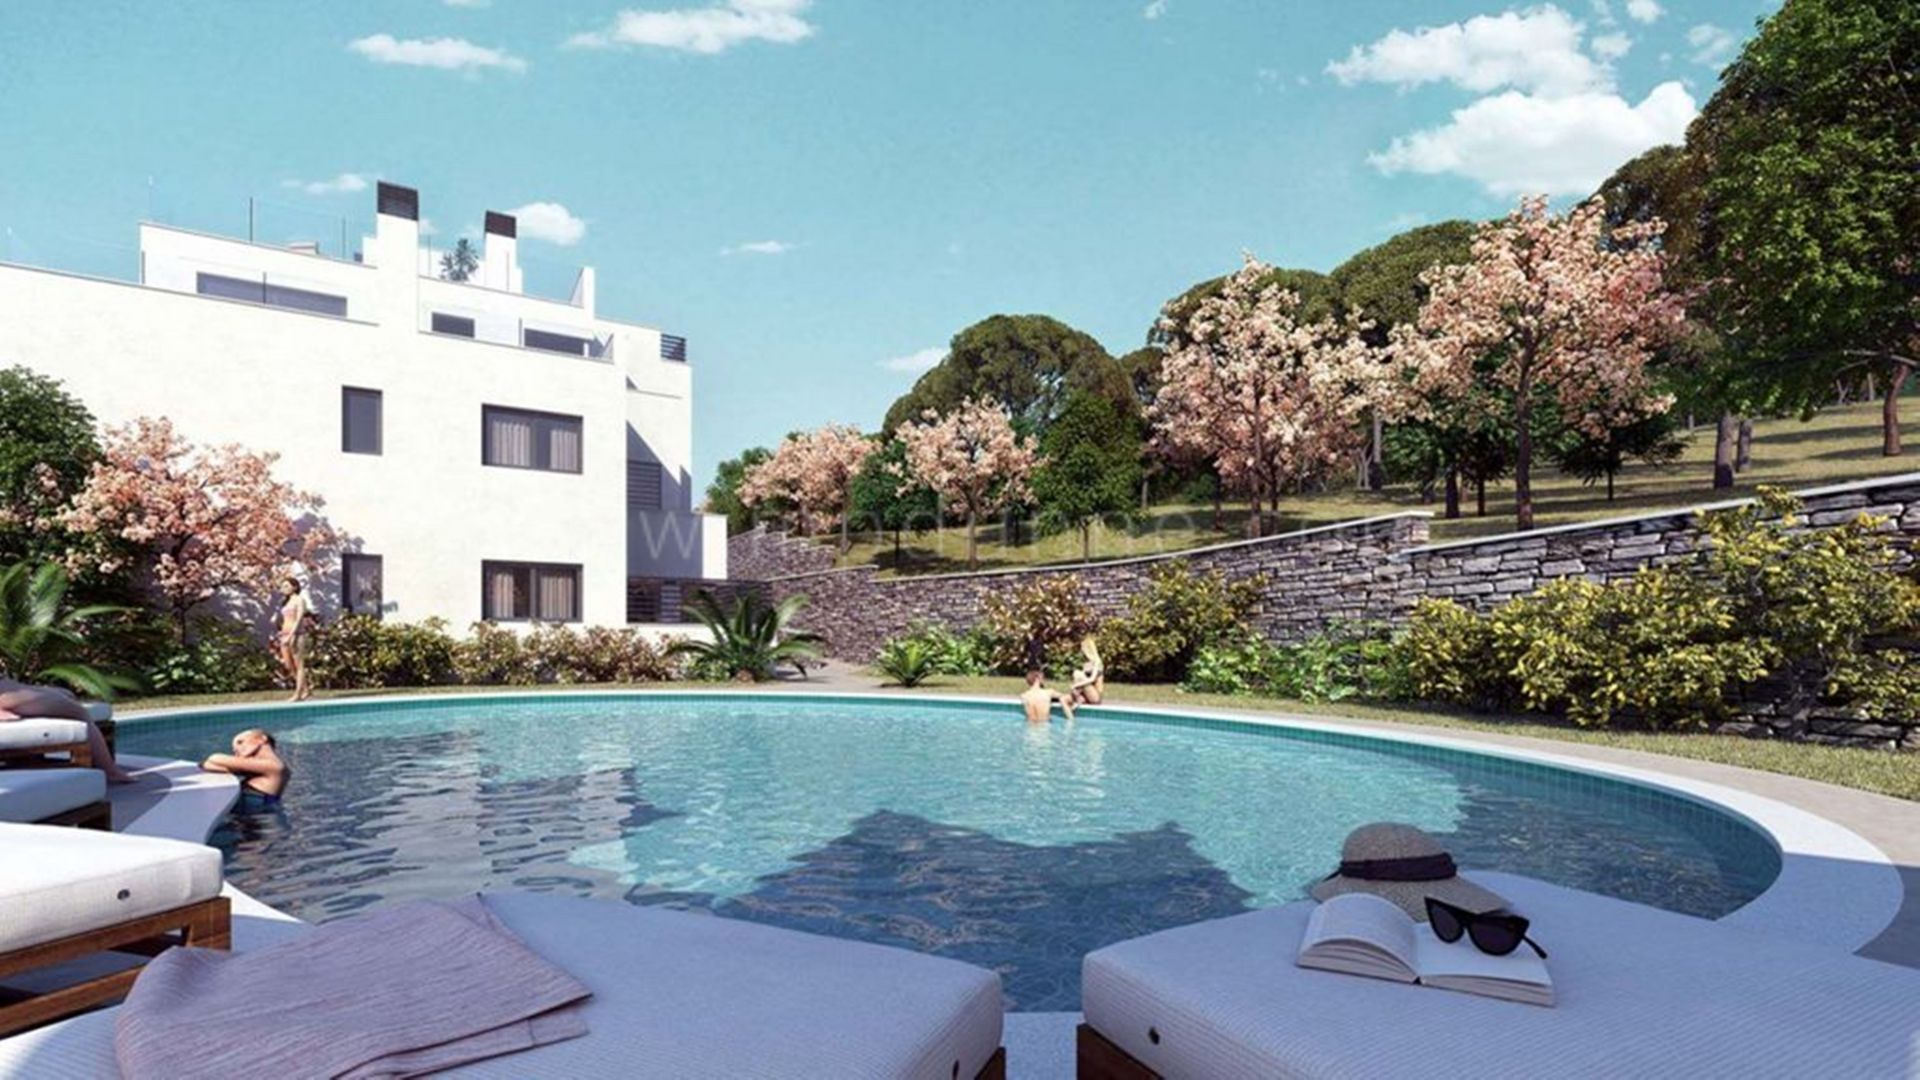 Canada Homes Marbella Apartments Off Plan Of 2 3 4 Bed For Sale